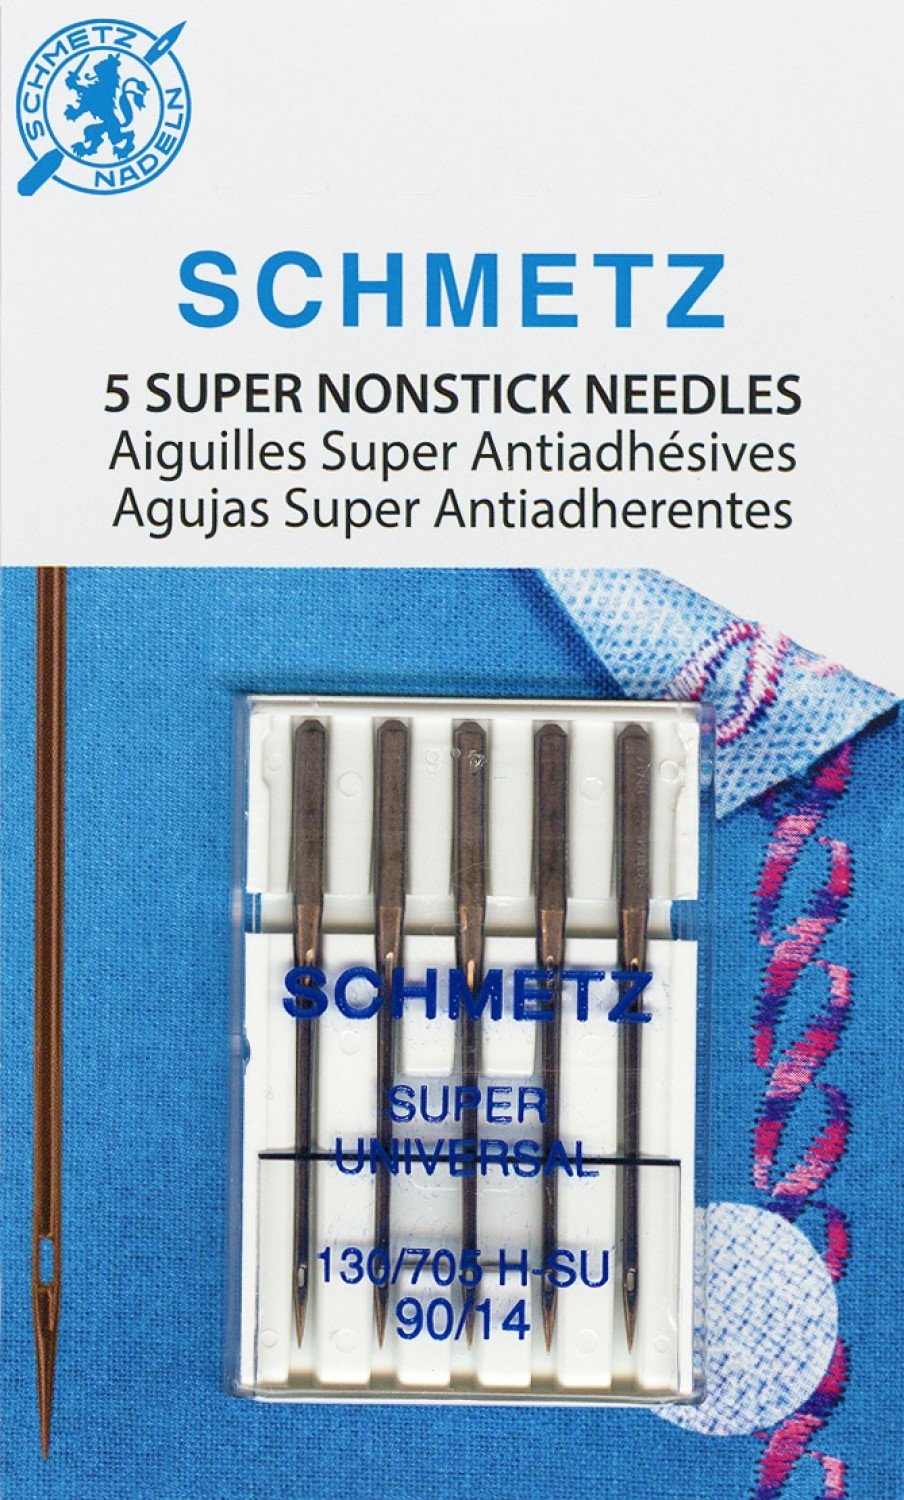 Super Nonstick Needles 90/14  - Set of 5